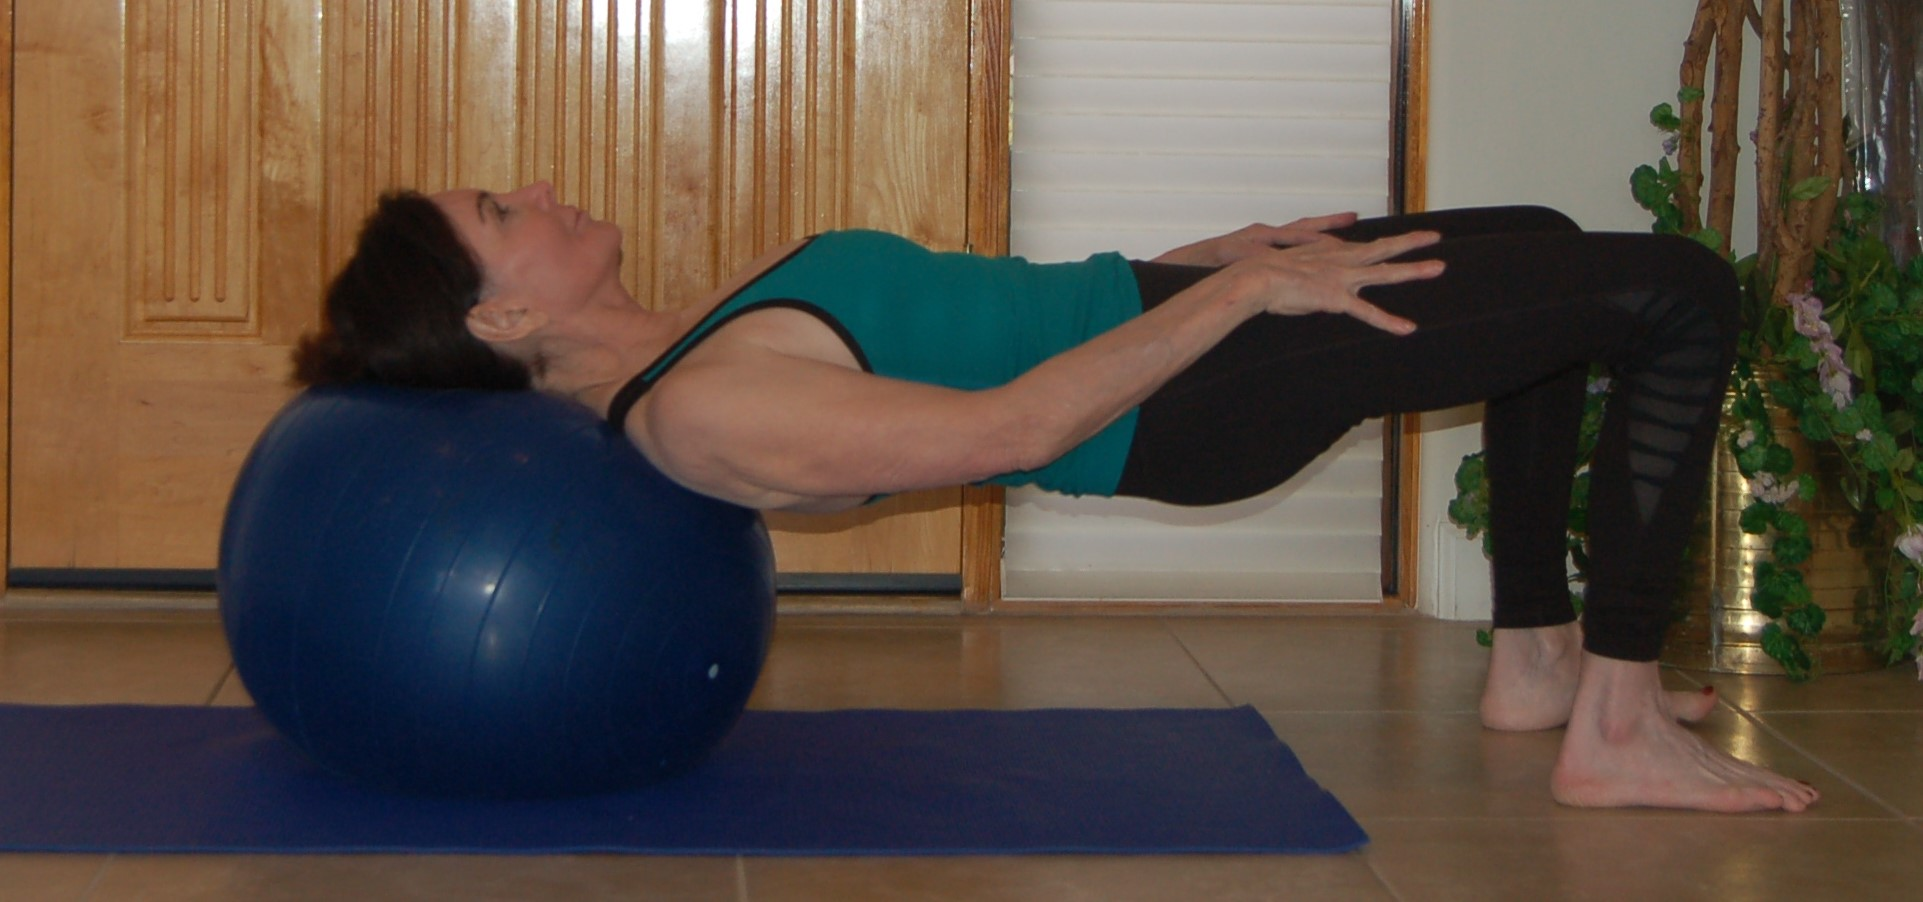 Exercise Ball Bridge